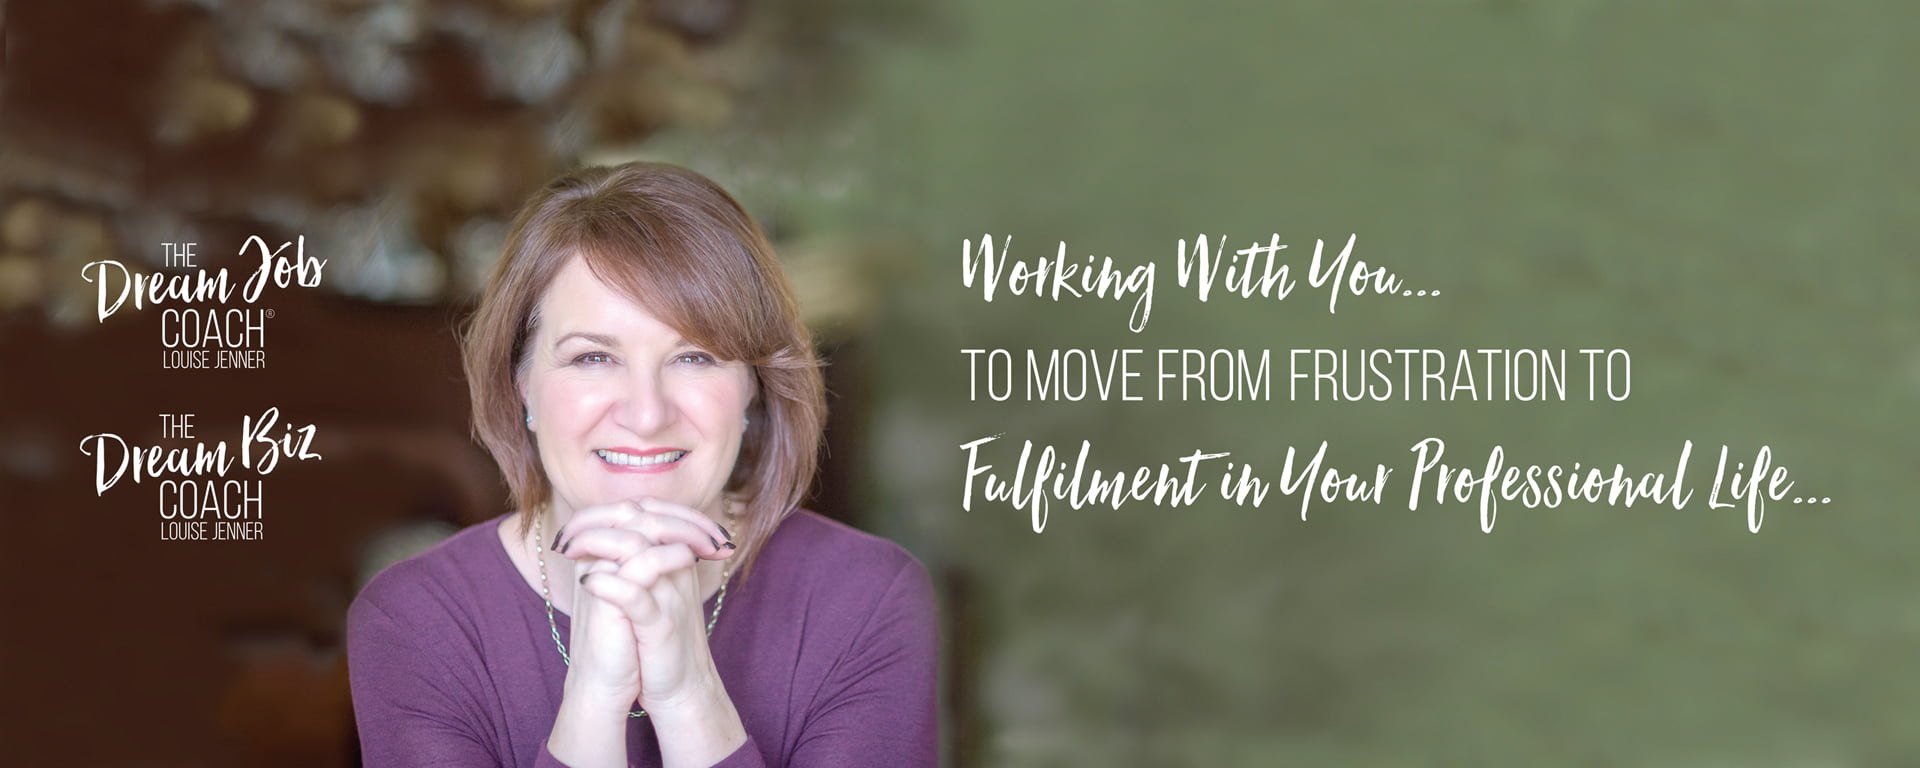 Louise Jenner, The Dream Job Coach, The Dream Biz Coach - Career and Business Coaching - Gloucester - Working with you to move from frustration to fulfilment in your professional life.